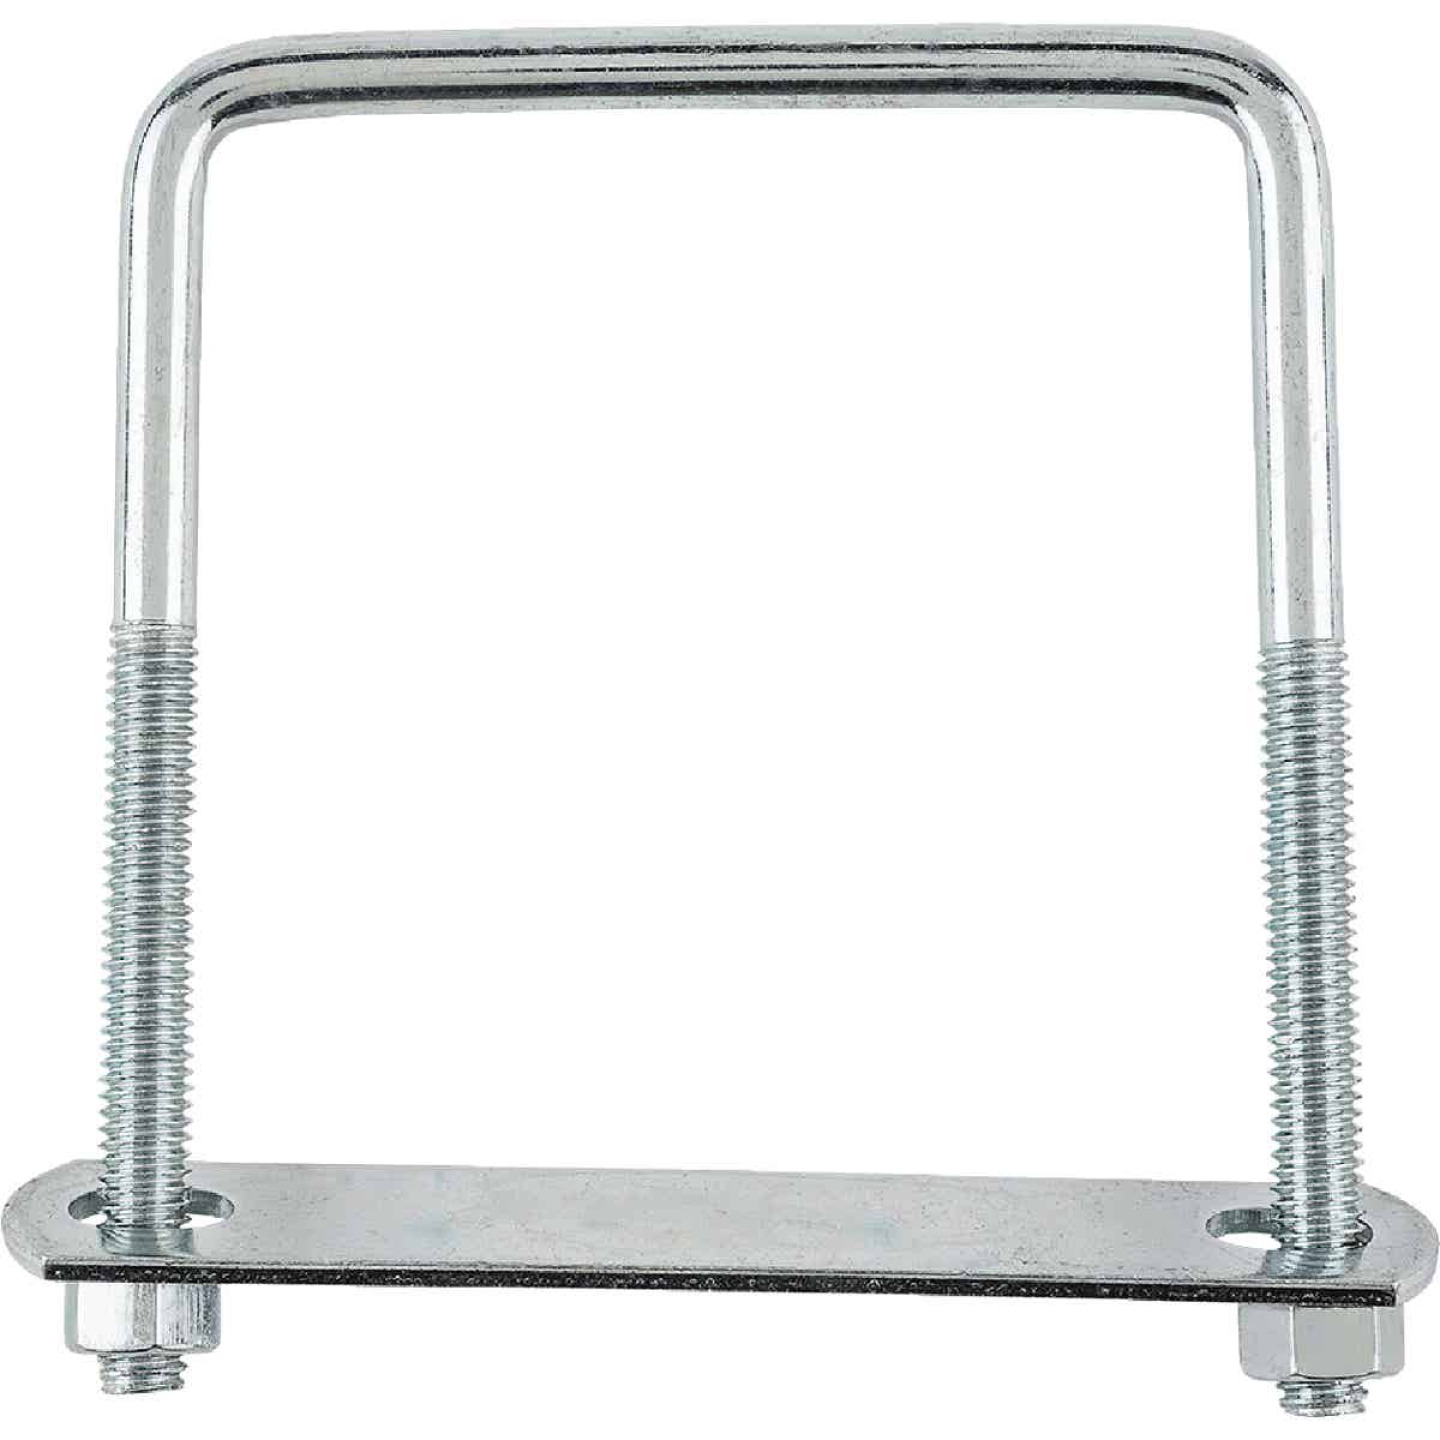 National 3/8 In. x 4 In. x 5 In. Zinc Square U Bolt Image 2